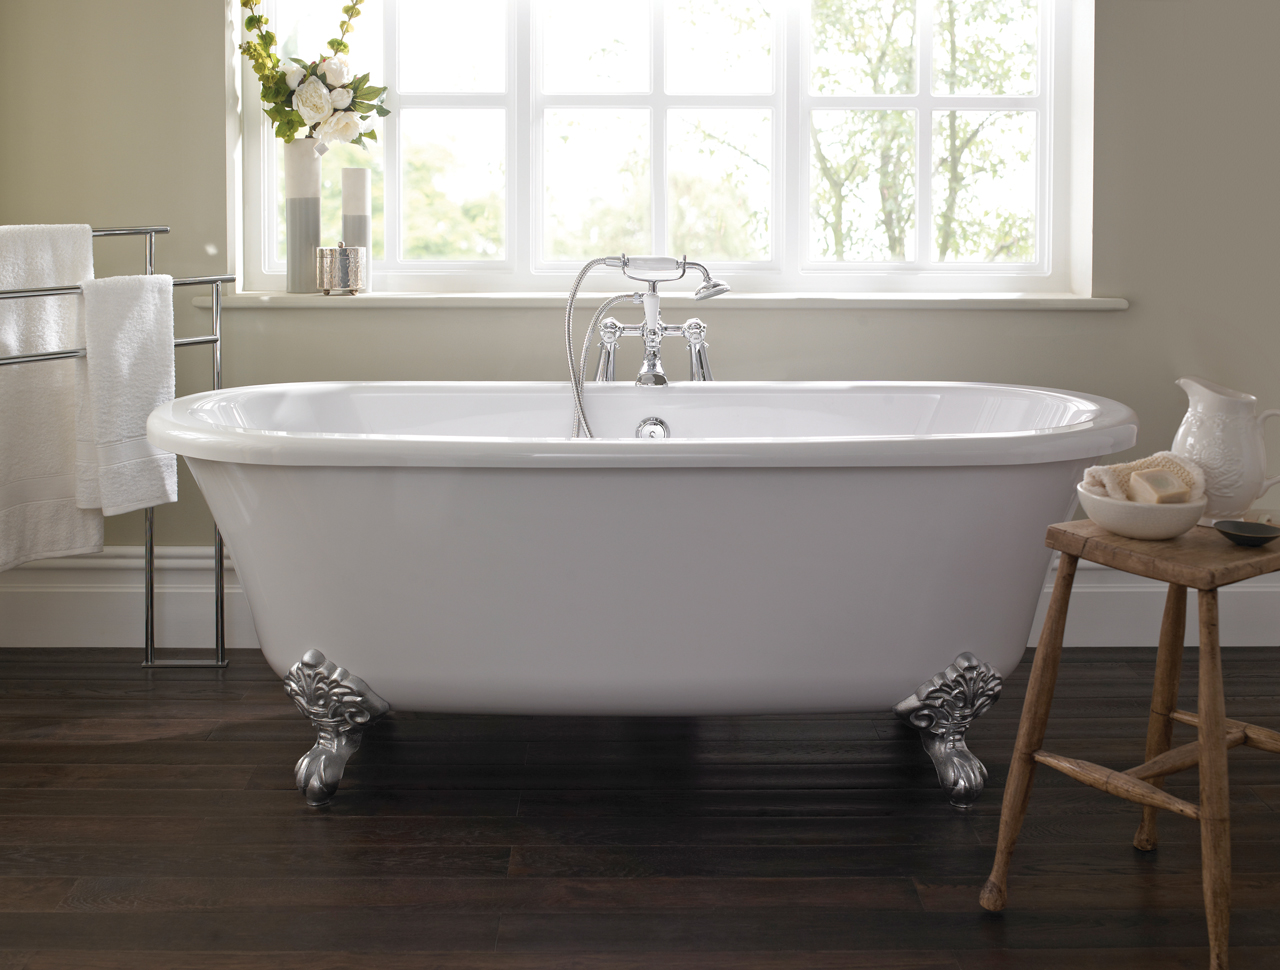 Traditional Roll Top Bath: Traditional Freestanding Roll Top Bath & Feet